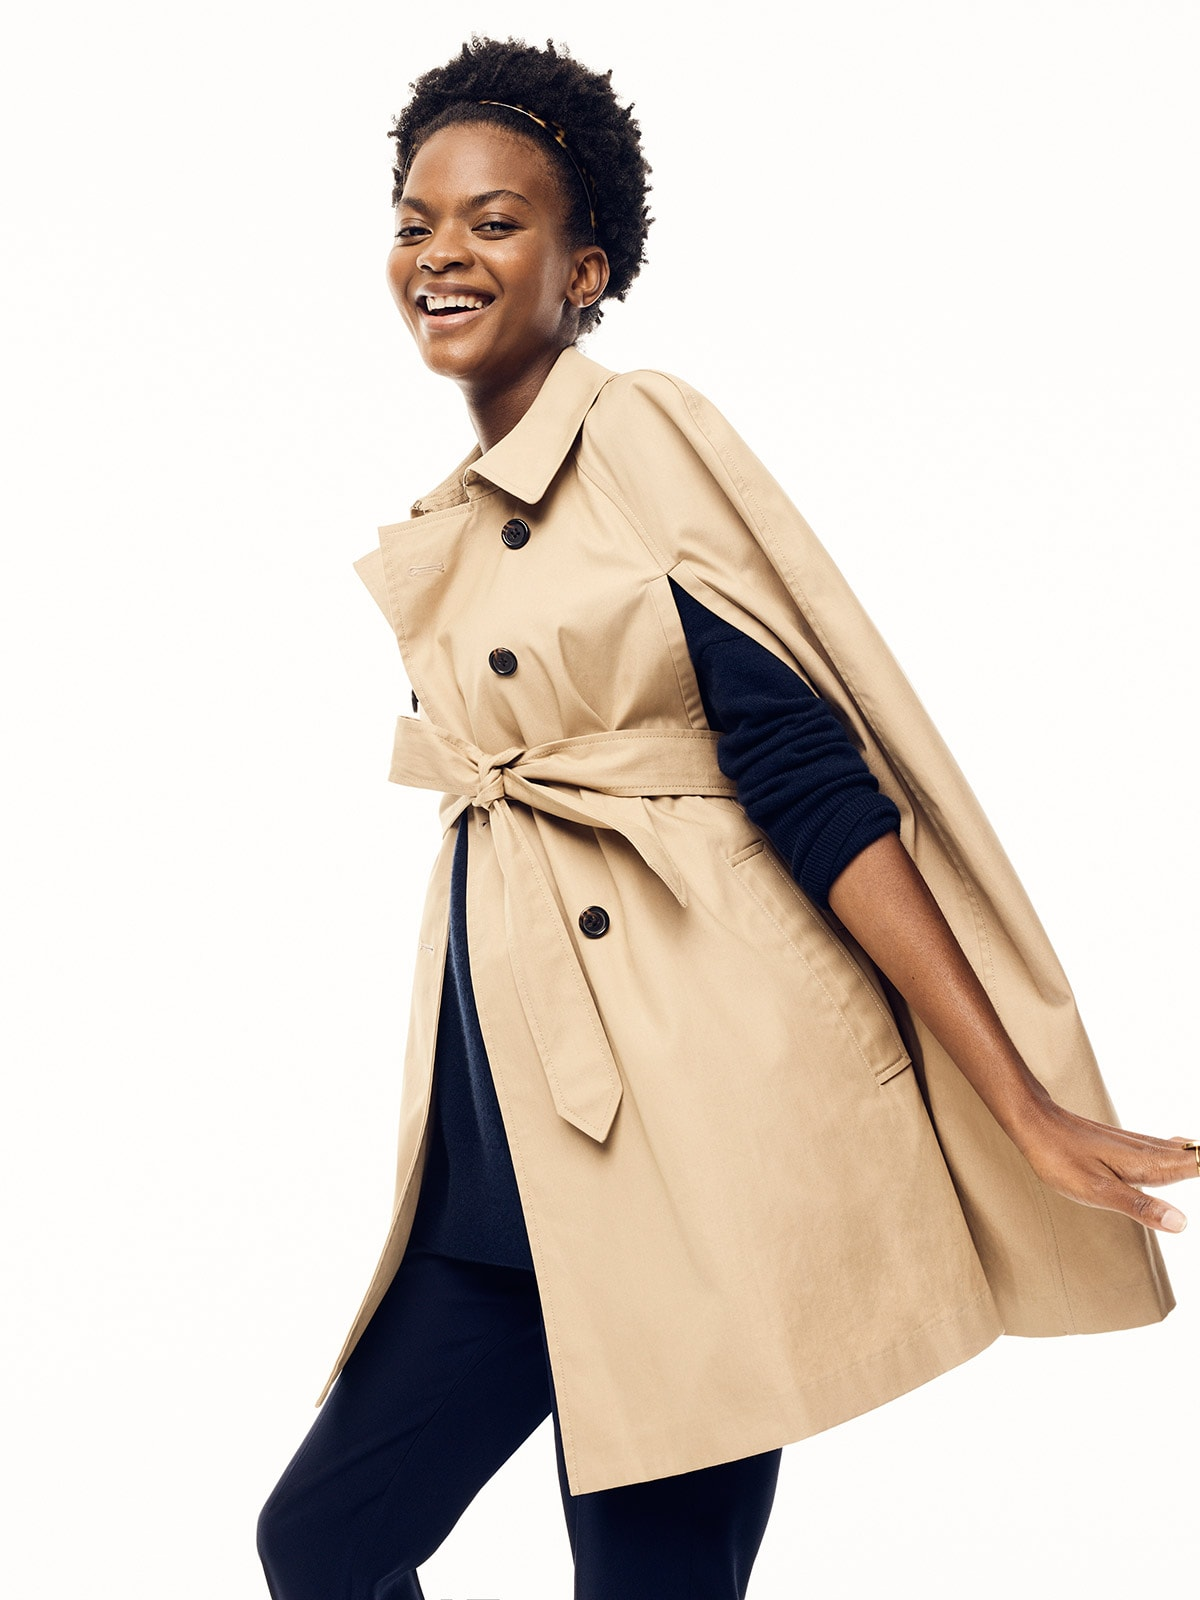 J.Crew expands to maternity with HATCH